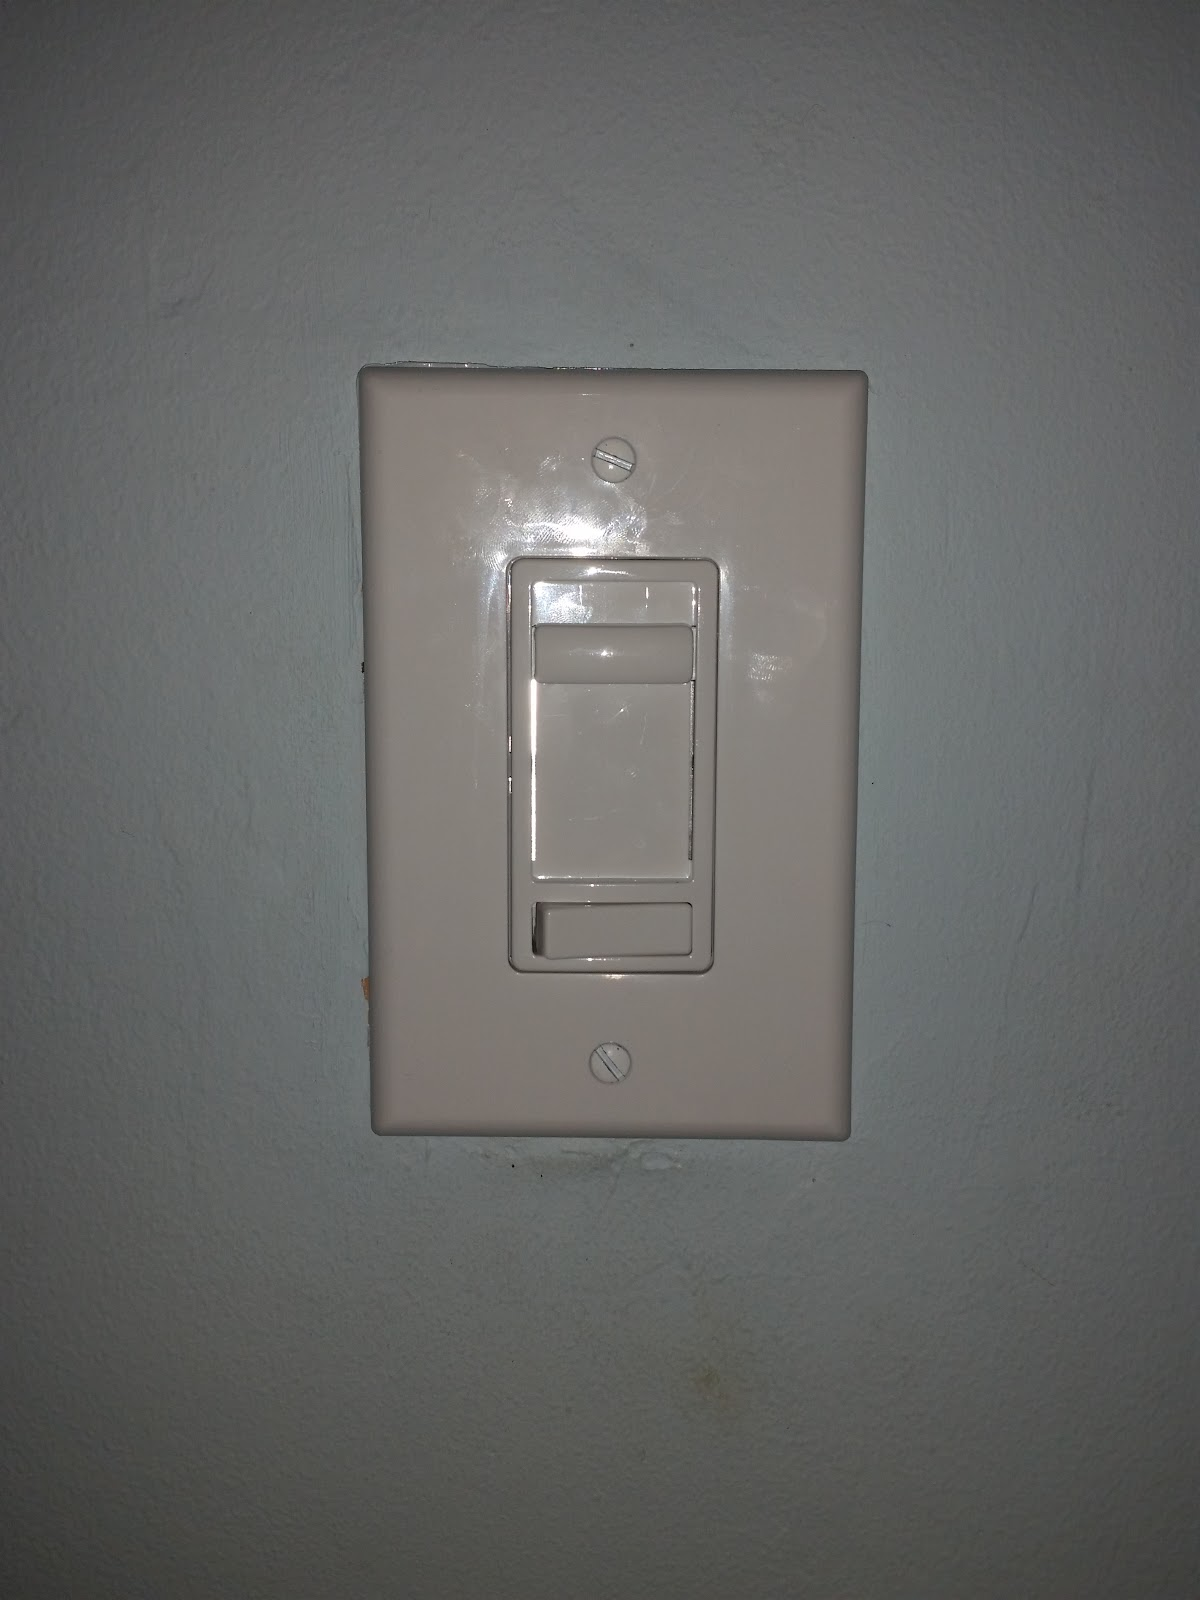 Amy in Egypt: Dimmer Switch